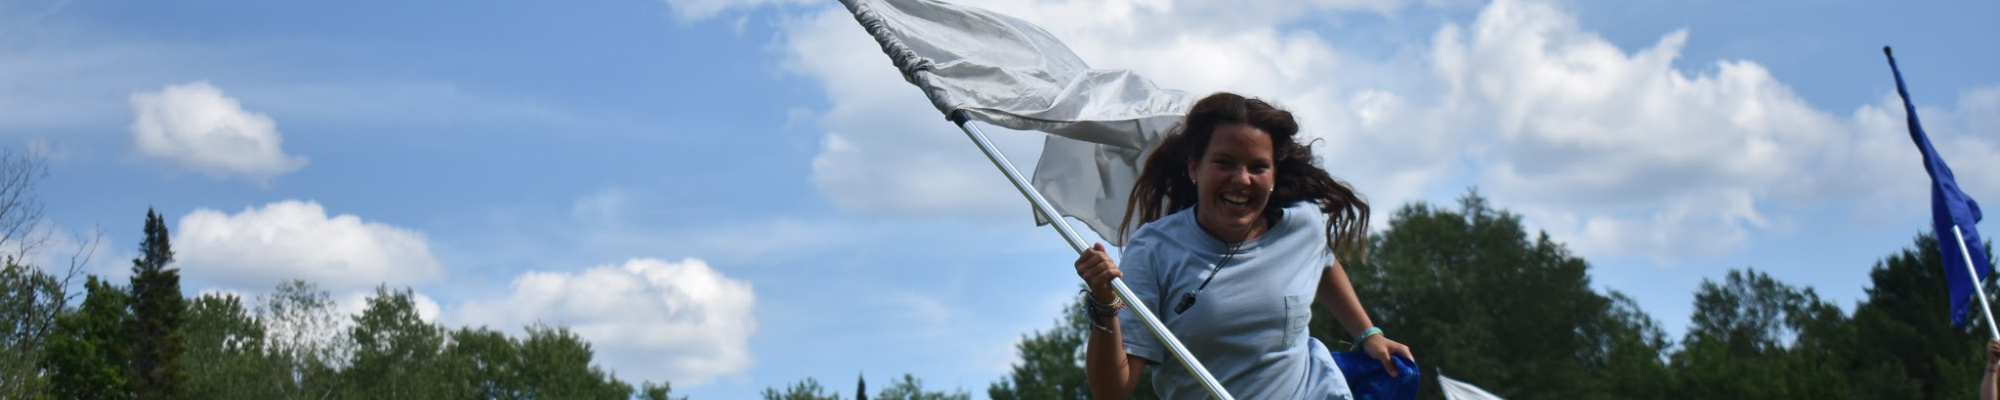 Camp counselor running with a white flag at an affordable sleepaway camp